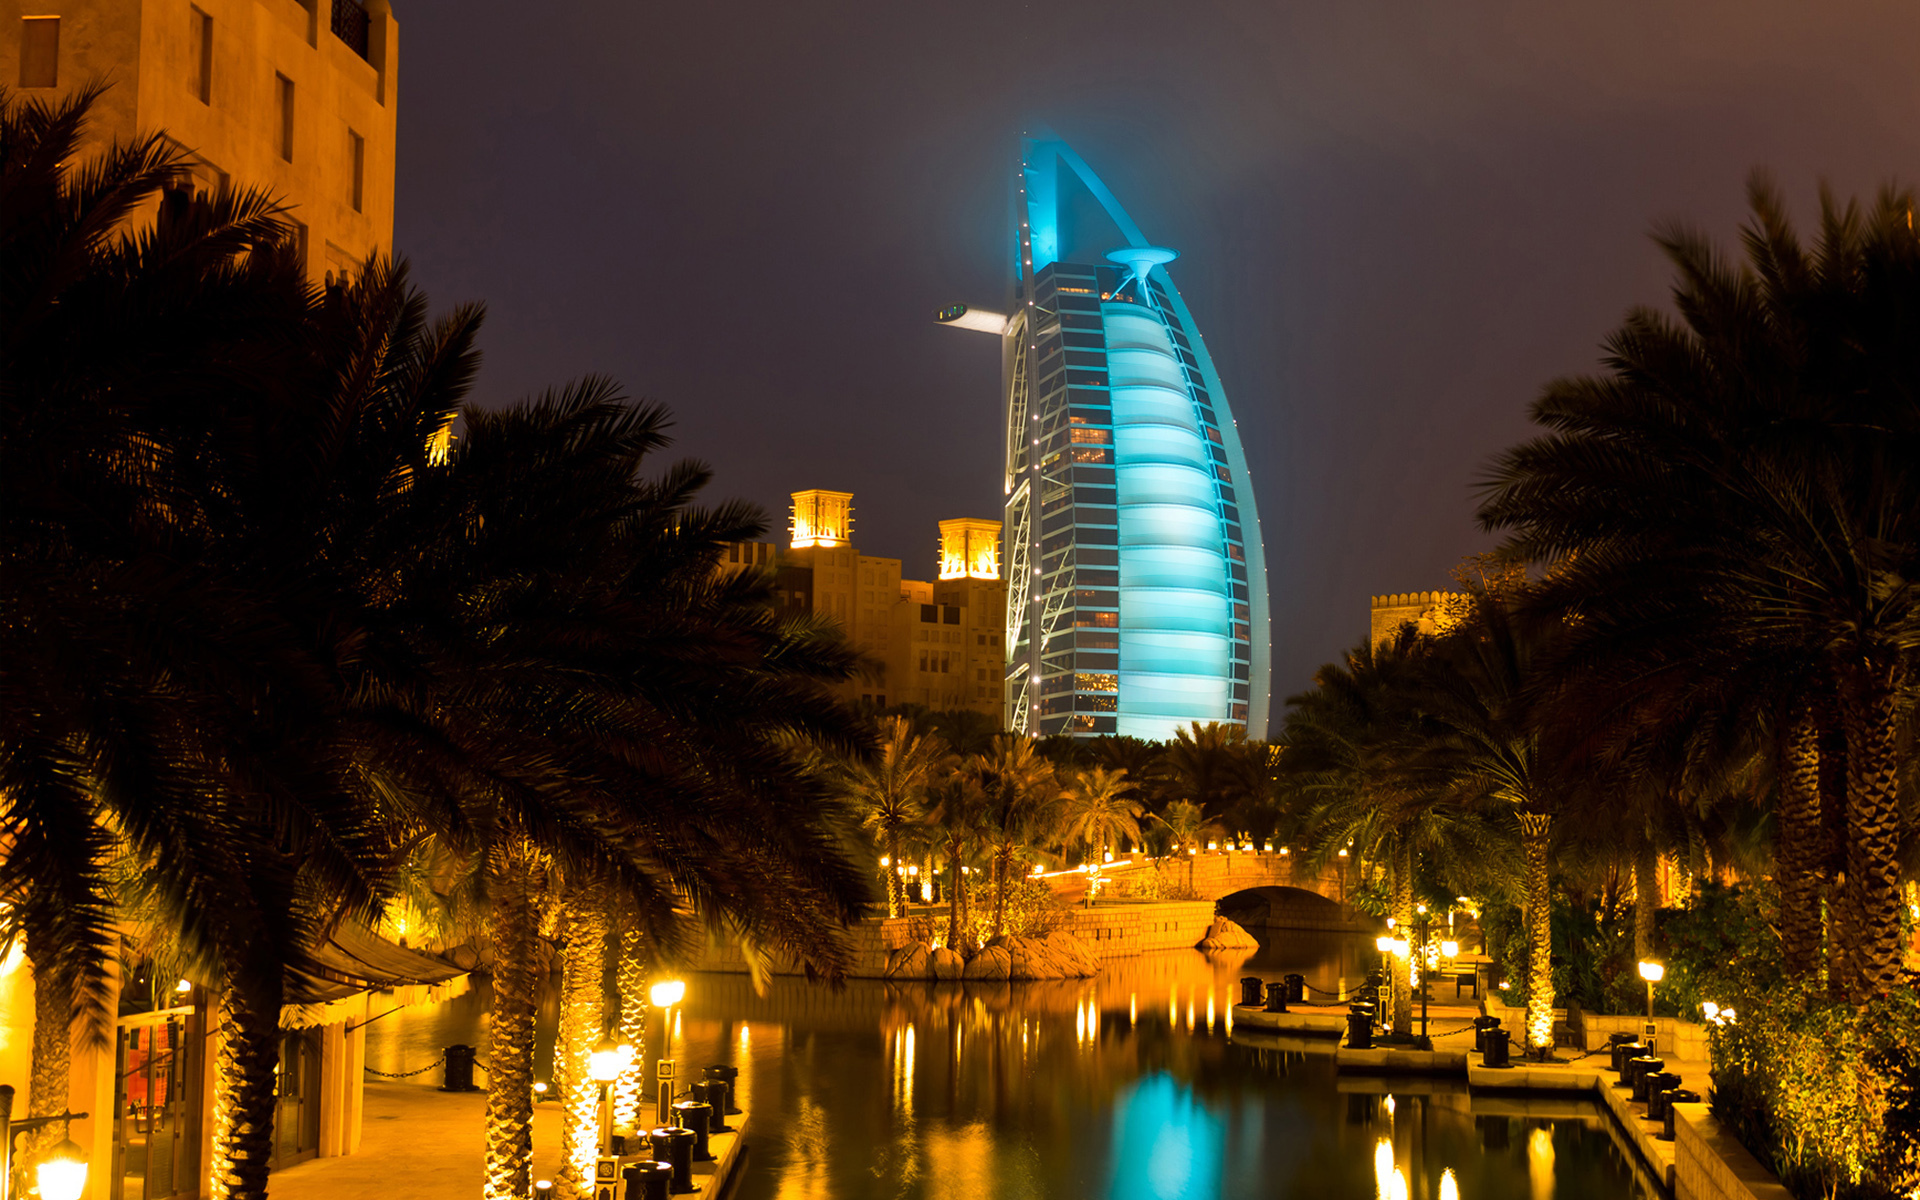 The Burj Al Arab, Dubai, UAE HD Wallpaper